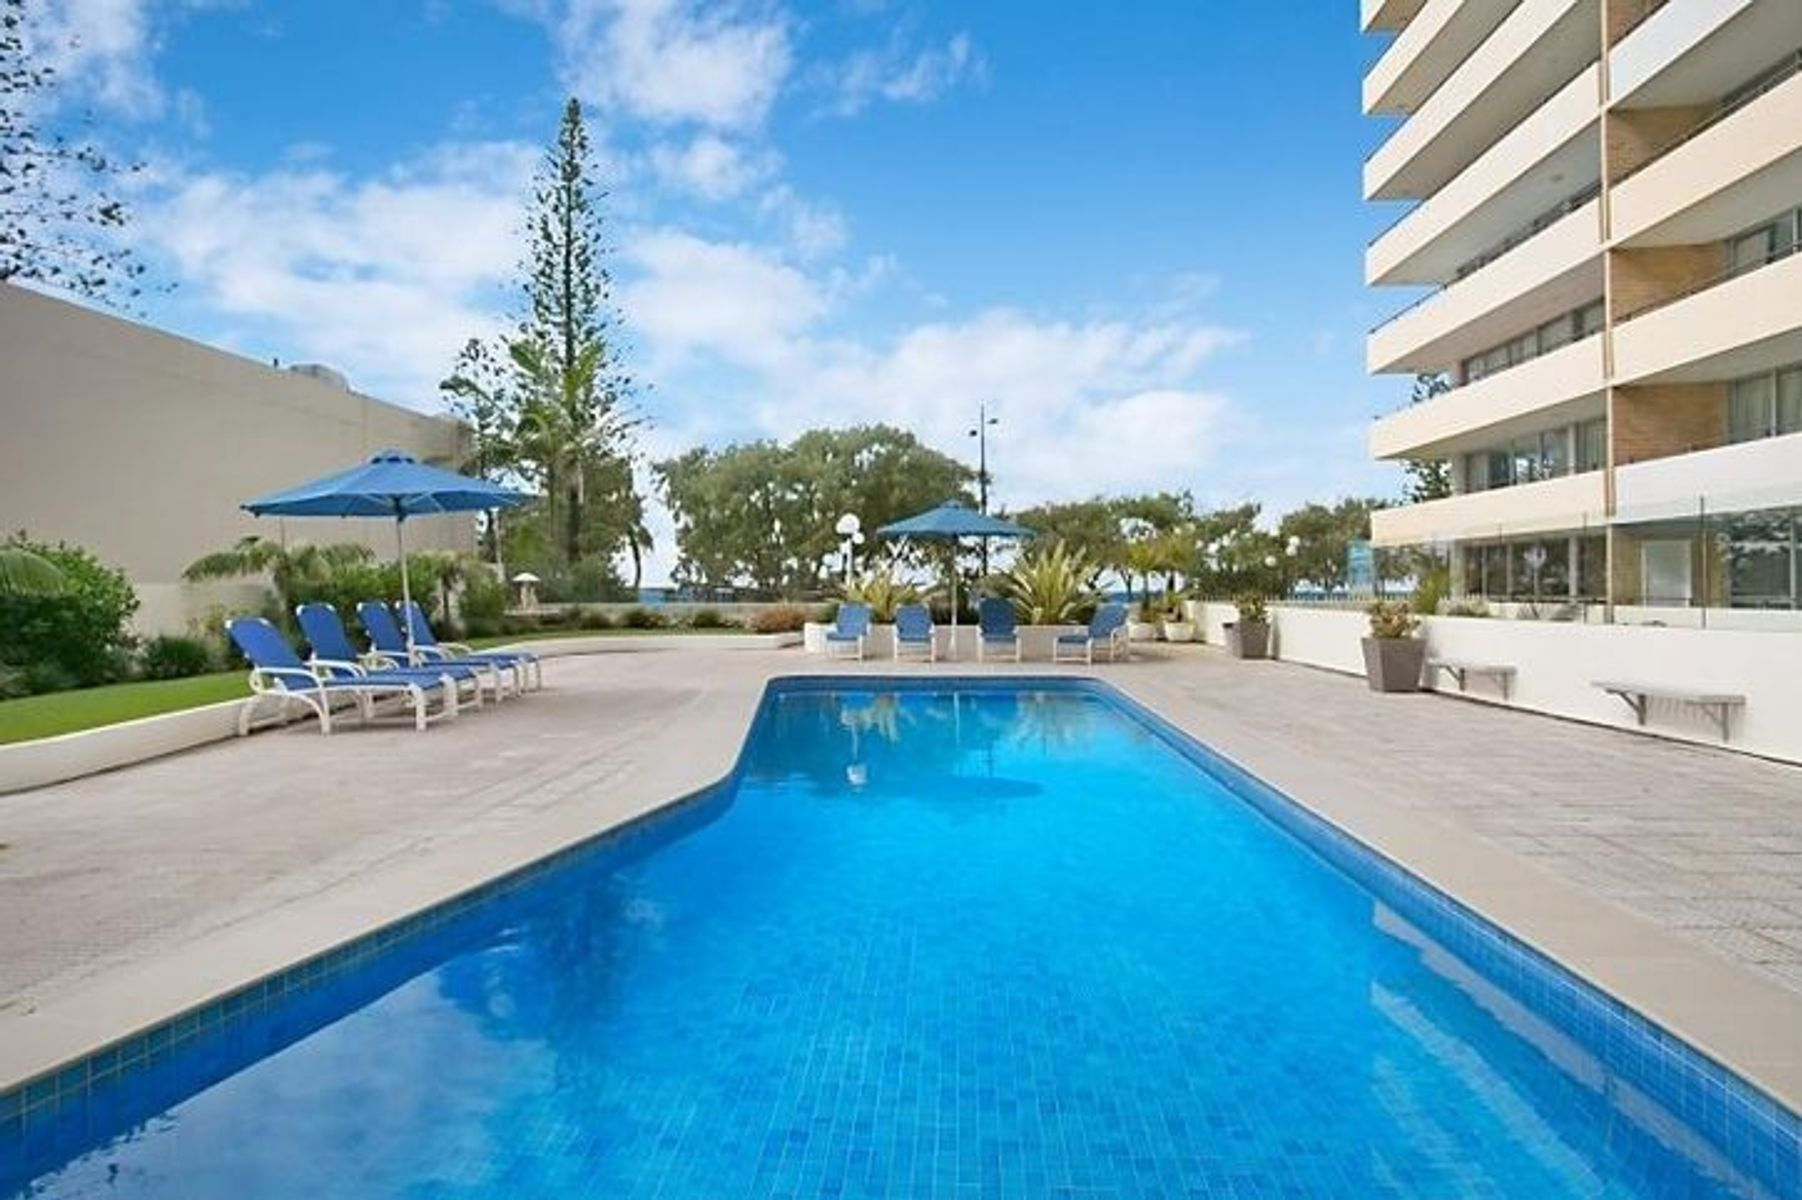 214/40 The Esplanade, Surfers Paradise, QLD 4217